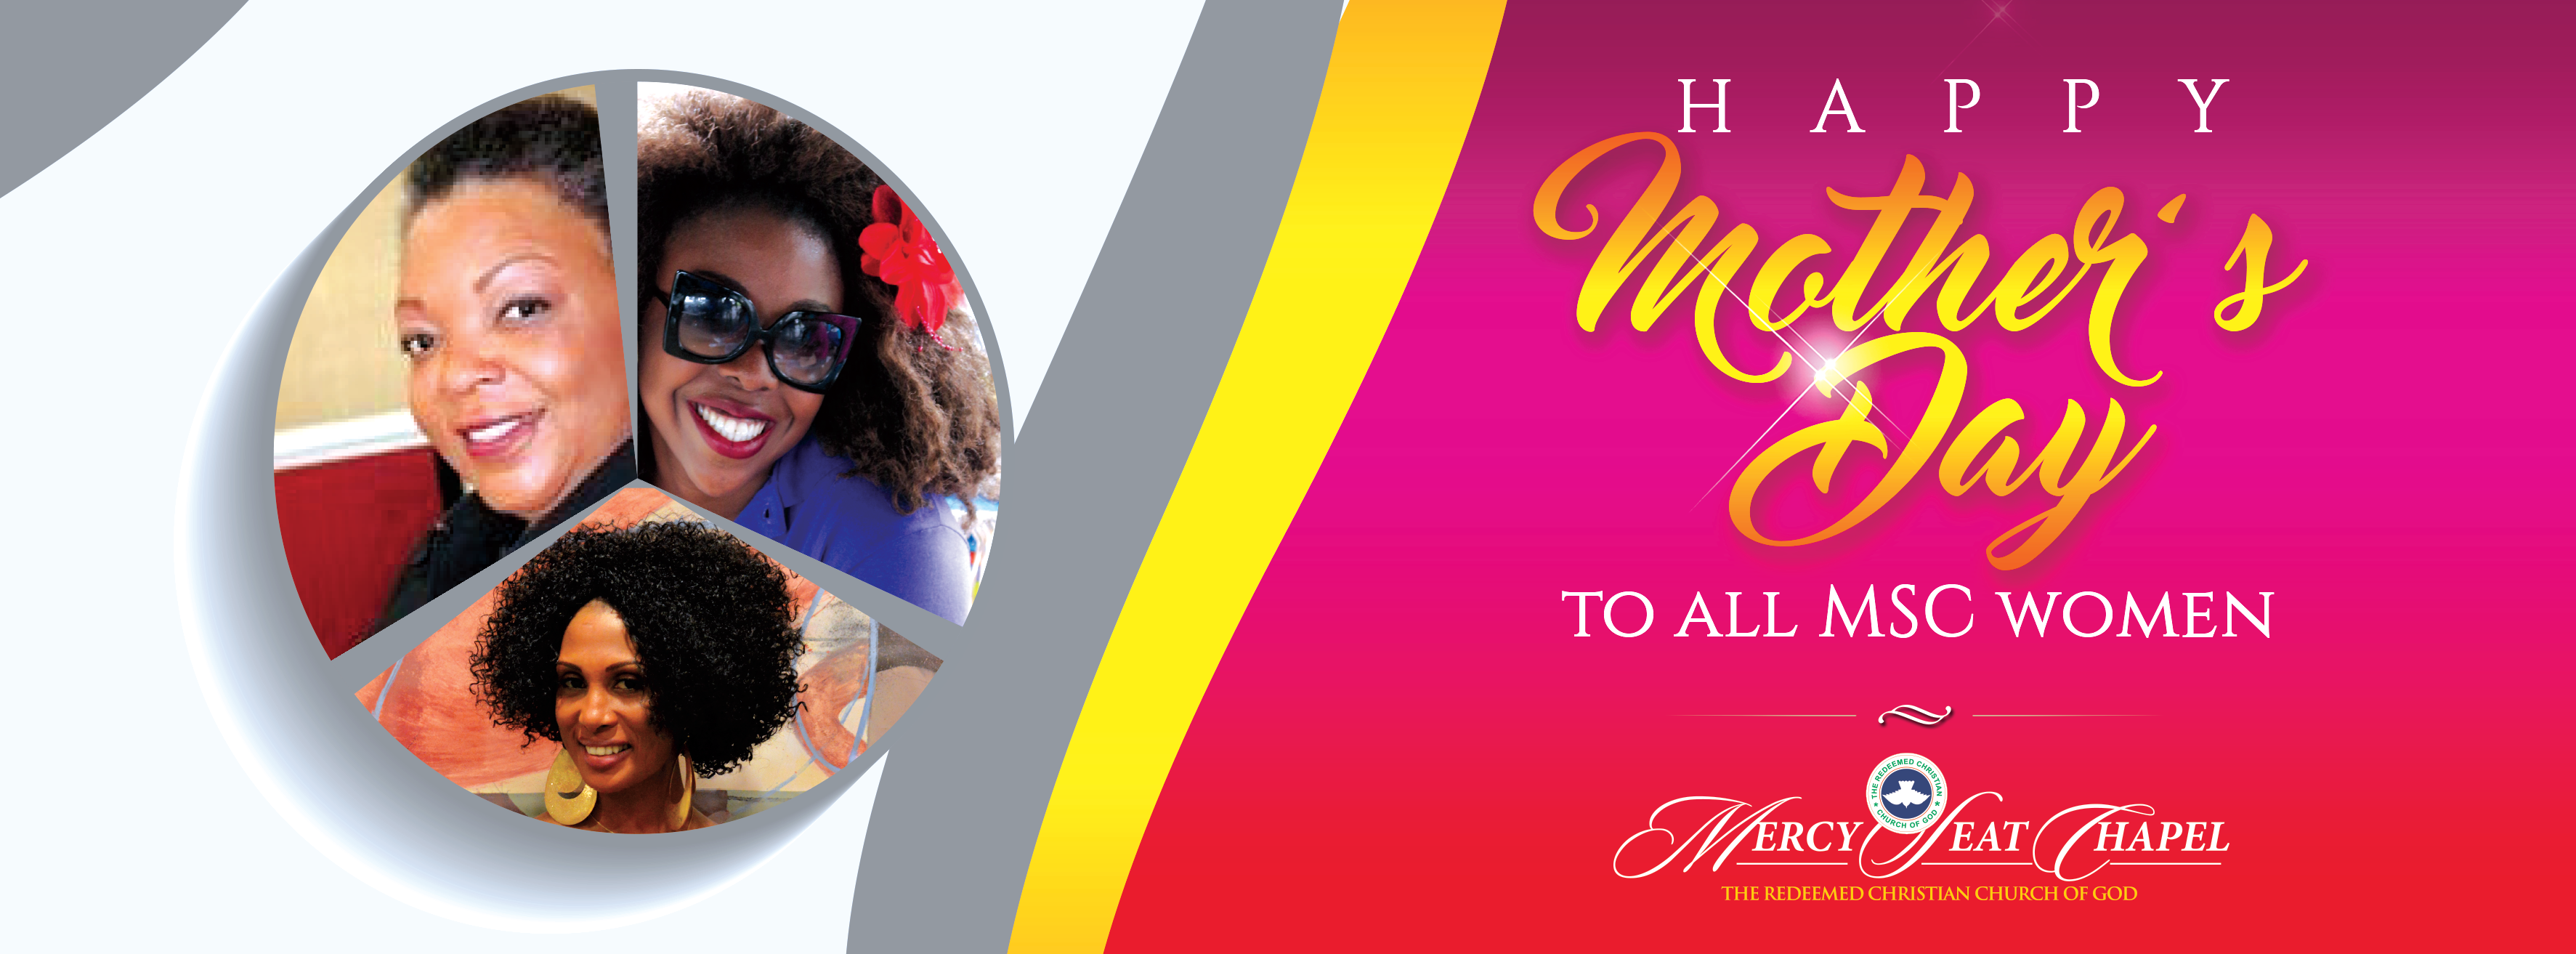 Happy-Mothers-Day-2-01-1